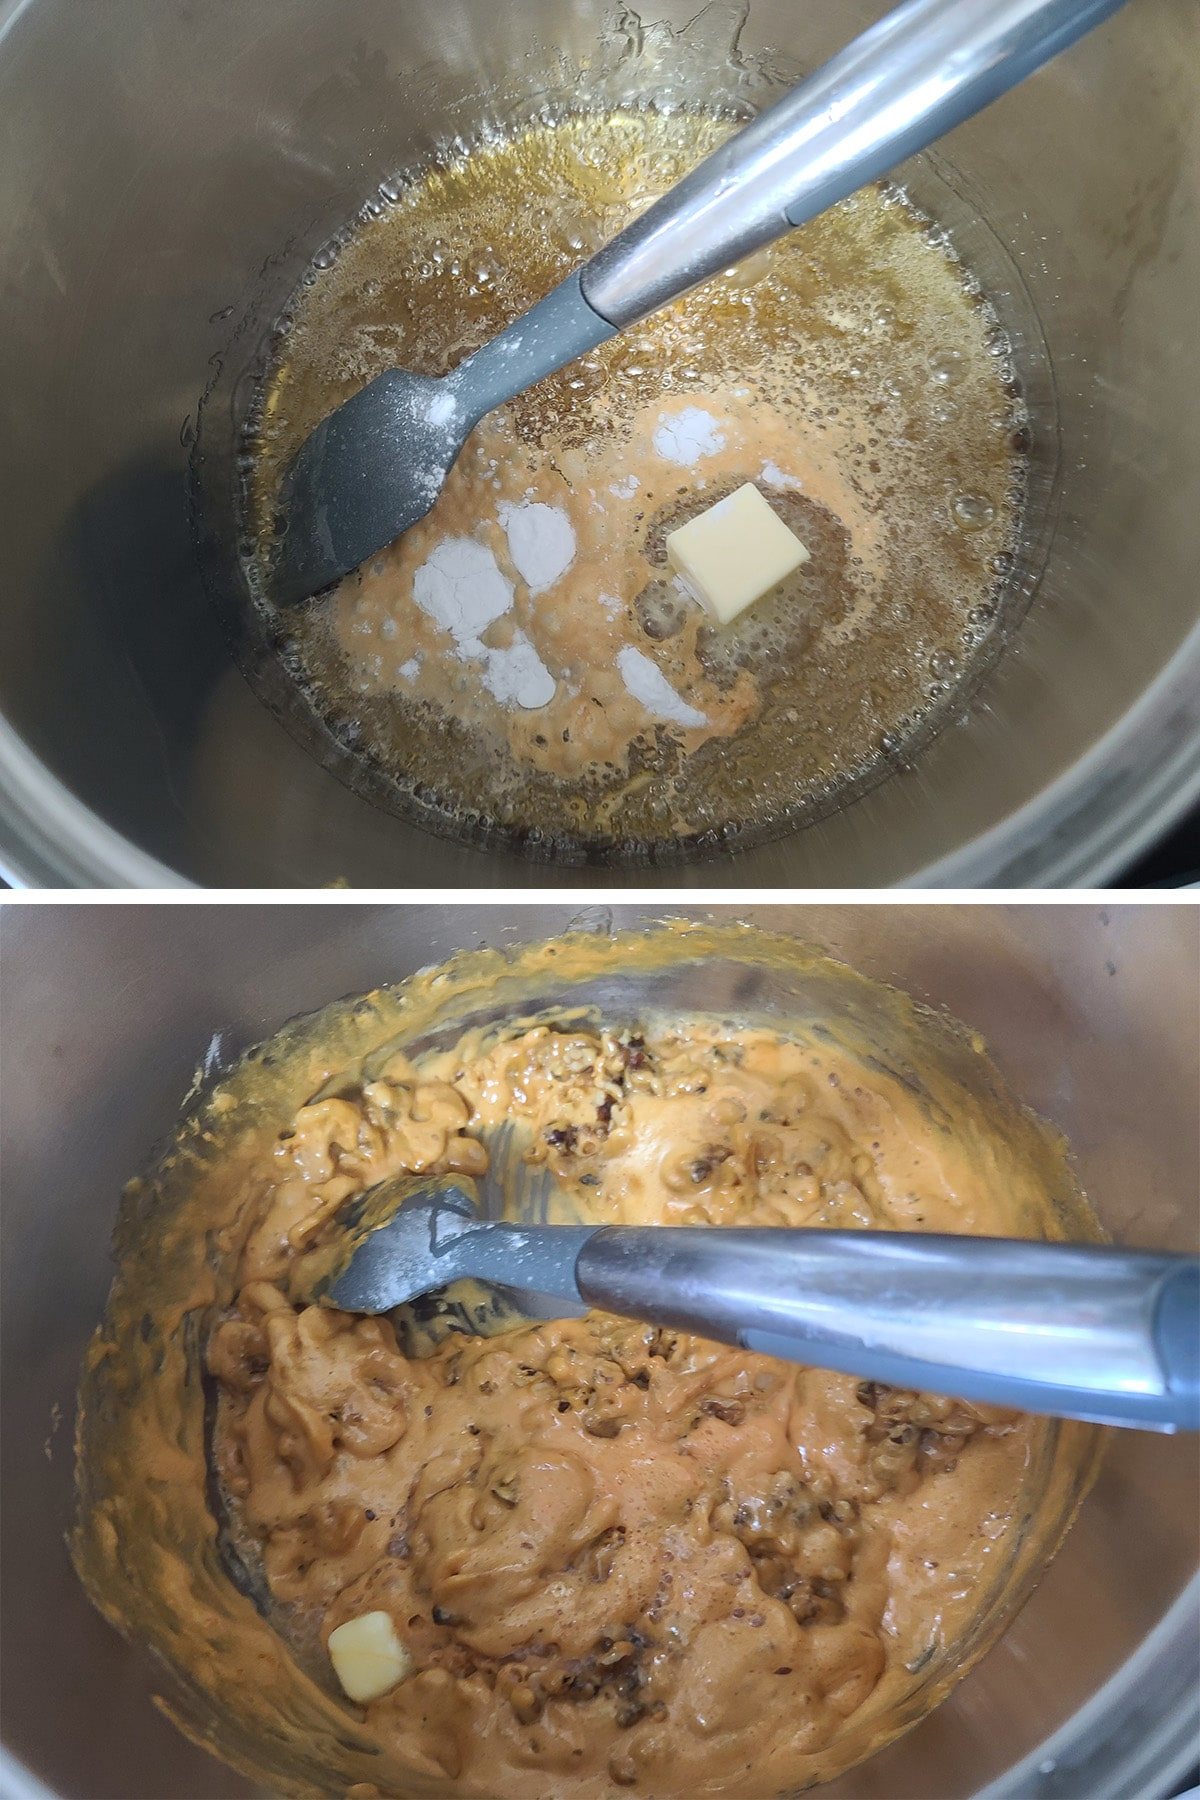 Butter, baking soda, nuts, and banana chips being added to the pot.